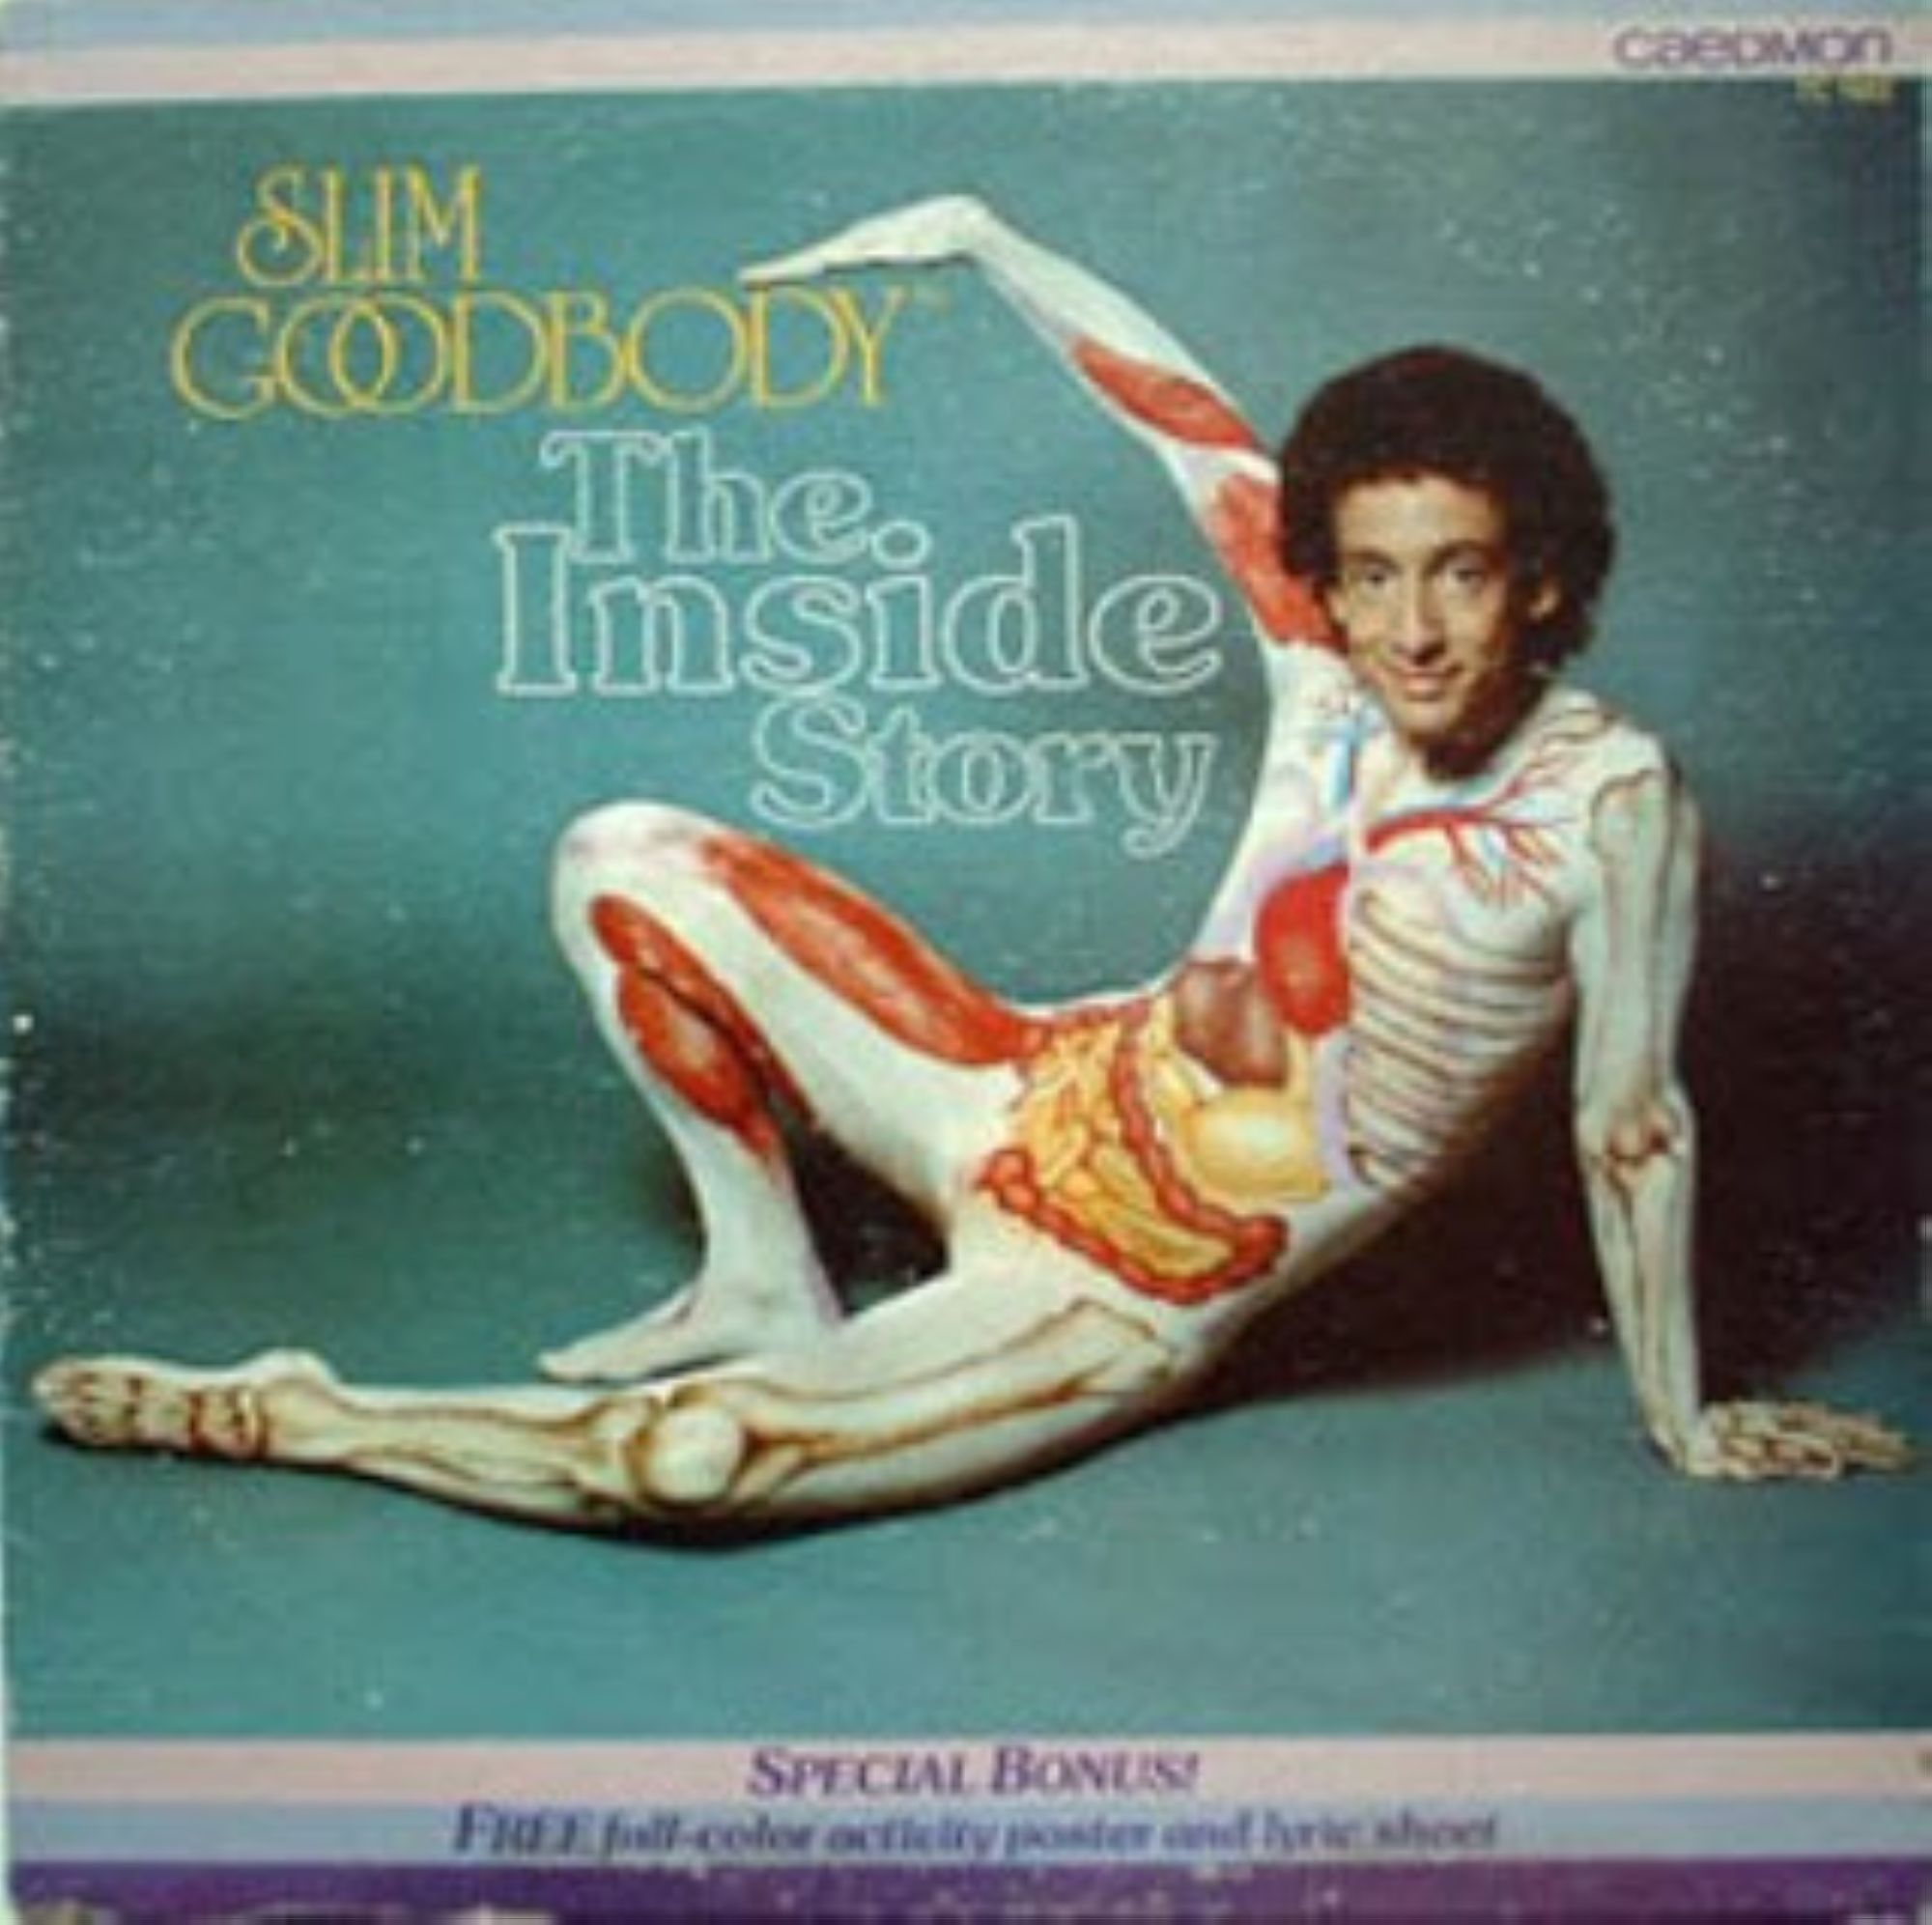 01-slim-goodbody_1.jpg